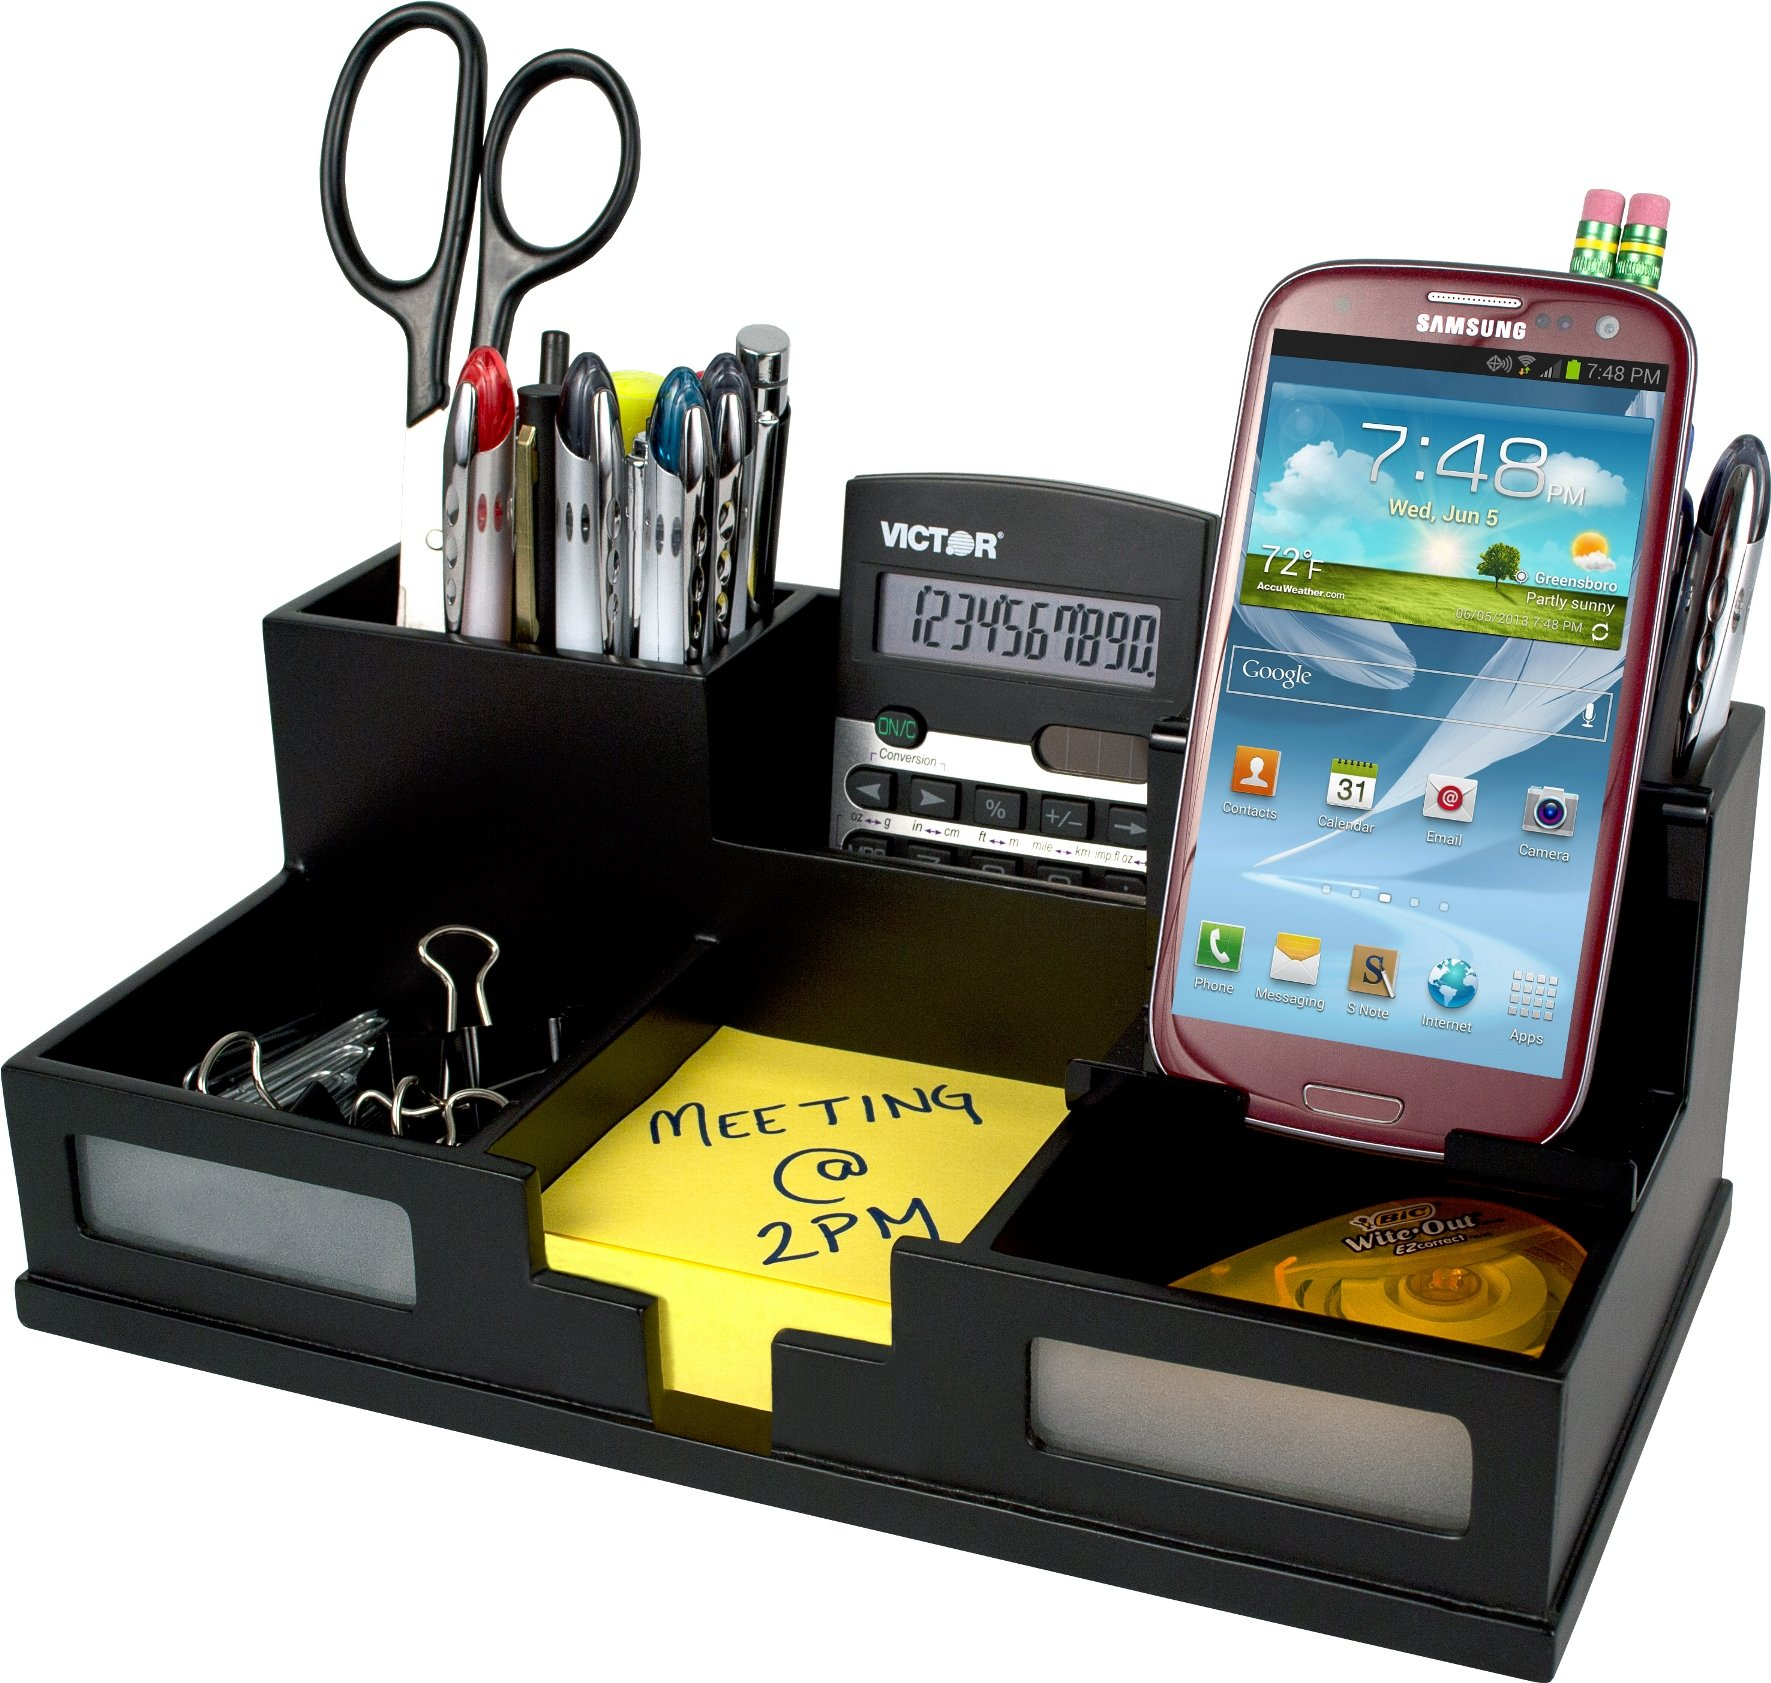 Victor Wood Desk Organizer with Smart Phone Holder, Midnight Black, 9525-5 by Victor